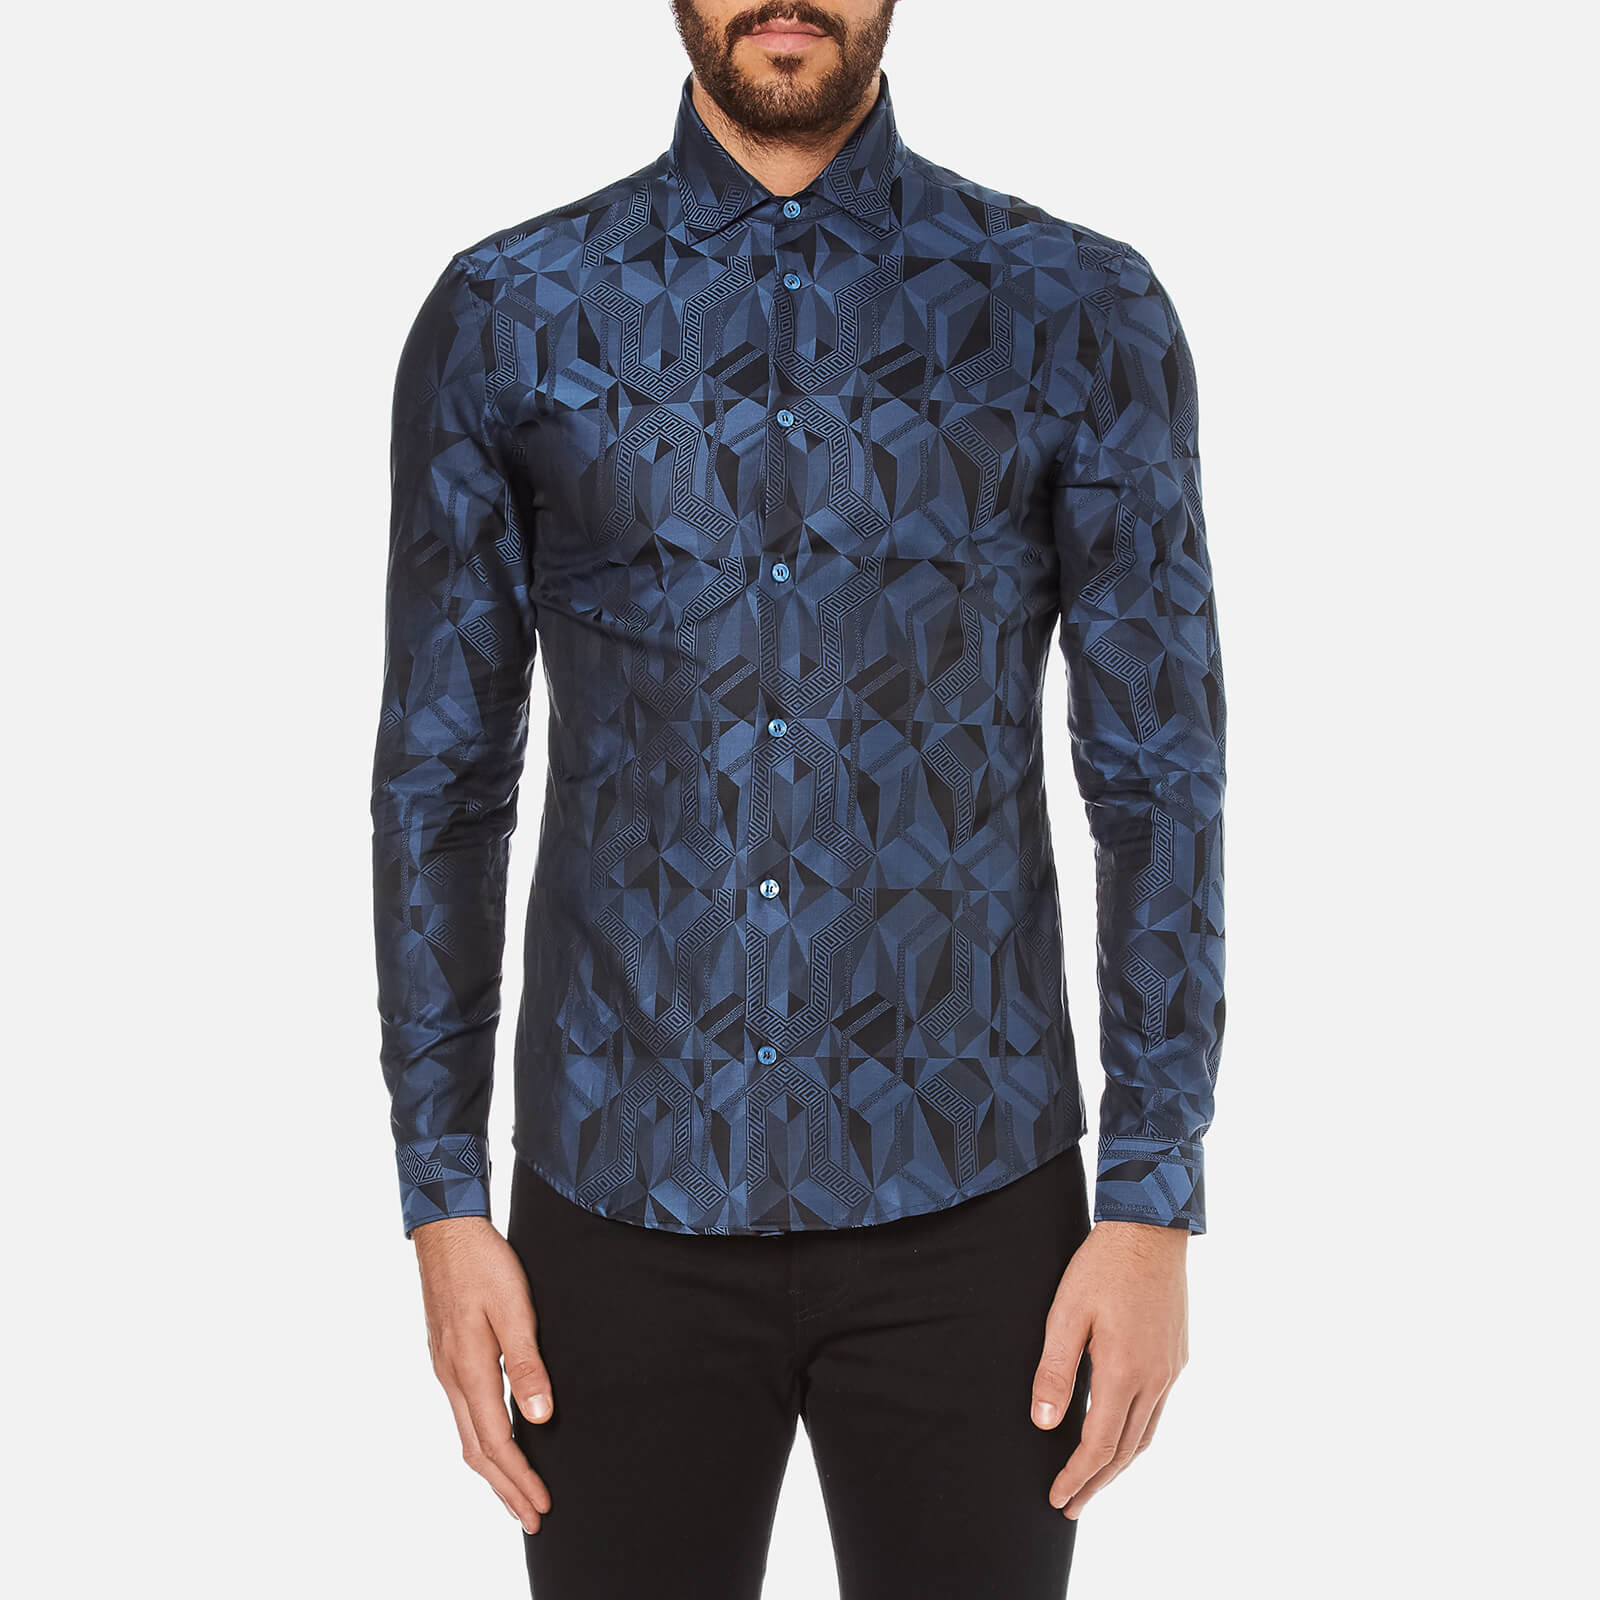 39a28292 Versace Collection Men's All Over Pattern Long Sleeve Shirt - Foschia -  Free UK Delivery over £50